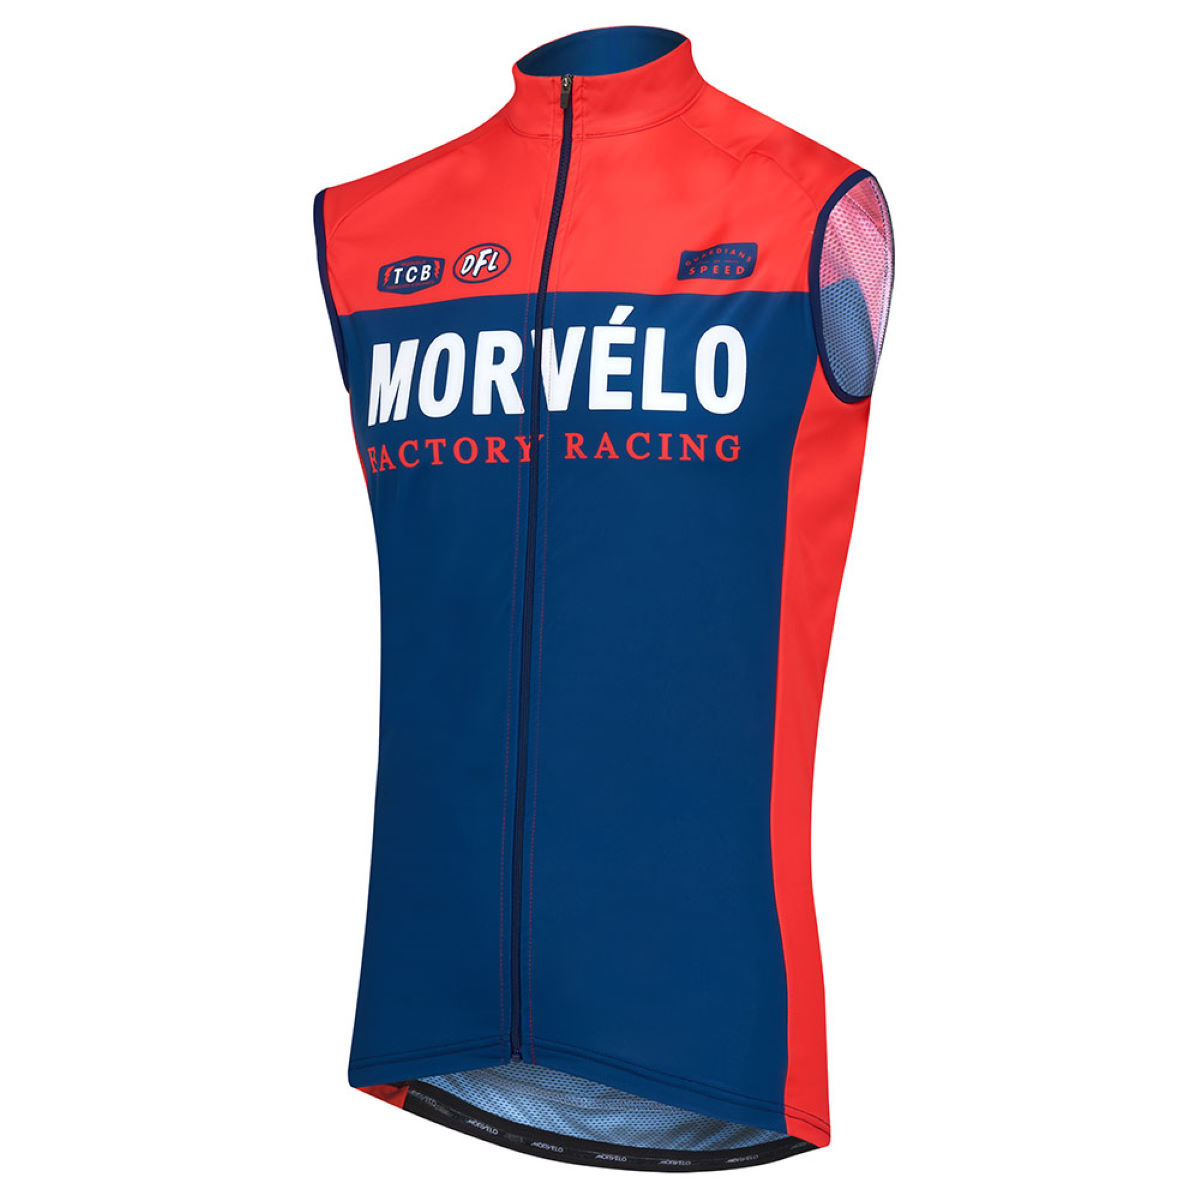 Gilet sans manches VTT Morvelo Factory Racing Covert - S Factory Racing Gilets vélo